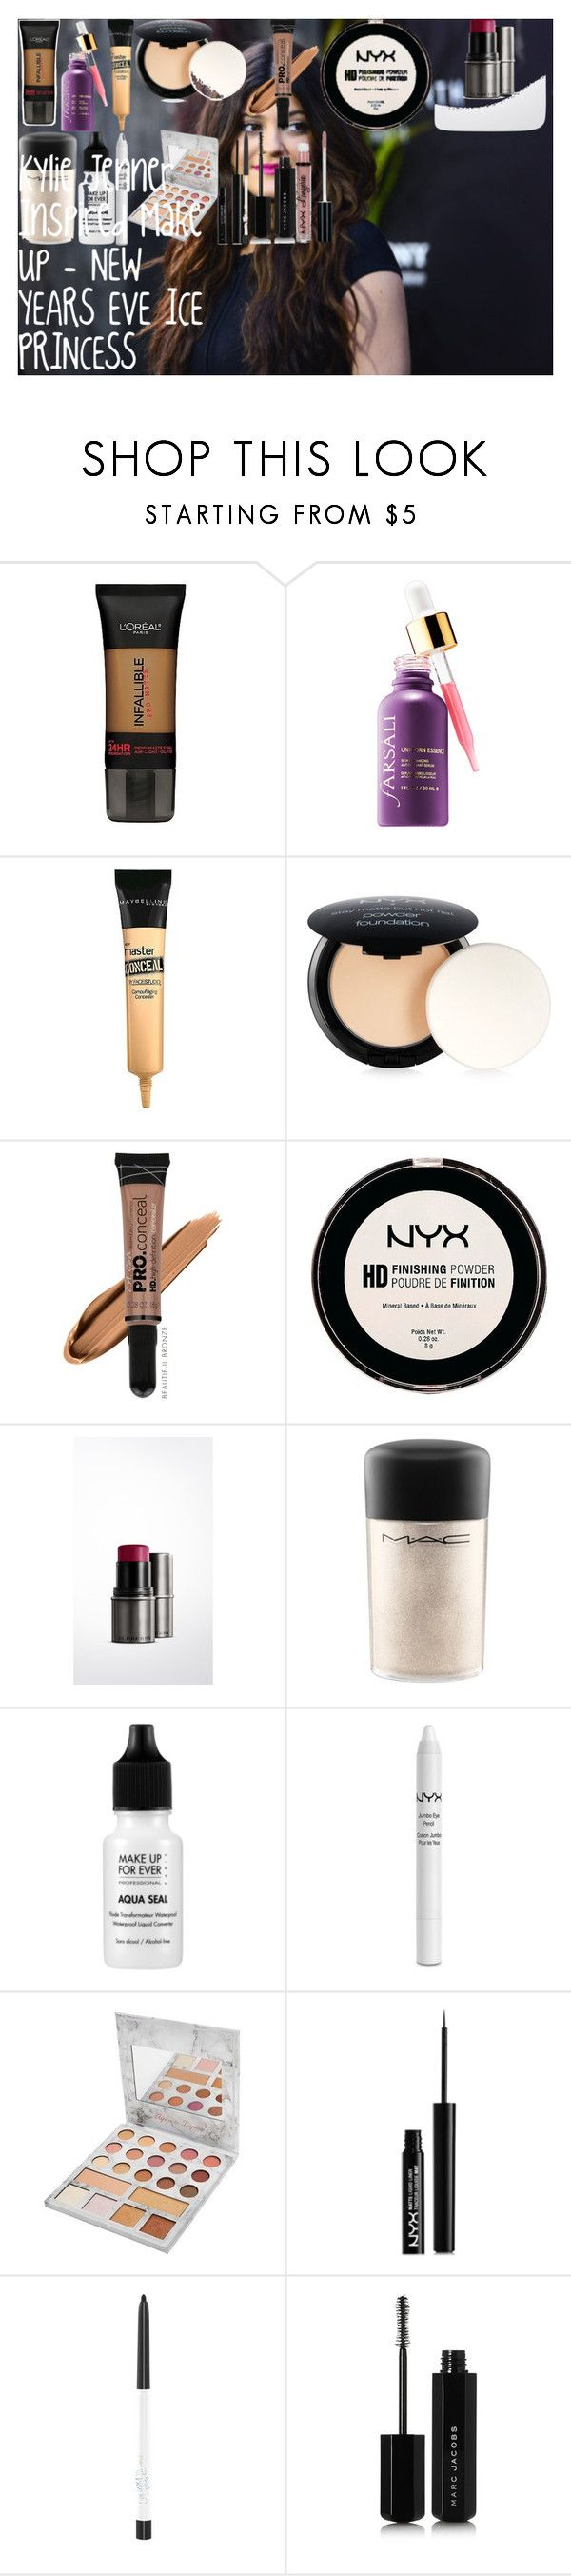 Kylie Jenner Inspired Make up - NEW YEARS EVE ICE PRINCESS by oroartye-1 on Polyvore featuring beauty, Burberry, Marc Jacobs, MAC Cosmetics, MAKE UP FOR EVER, BHCosmetics, L.A. Girl, NYX, L'Oréal Paris and Maybelline